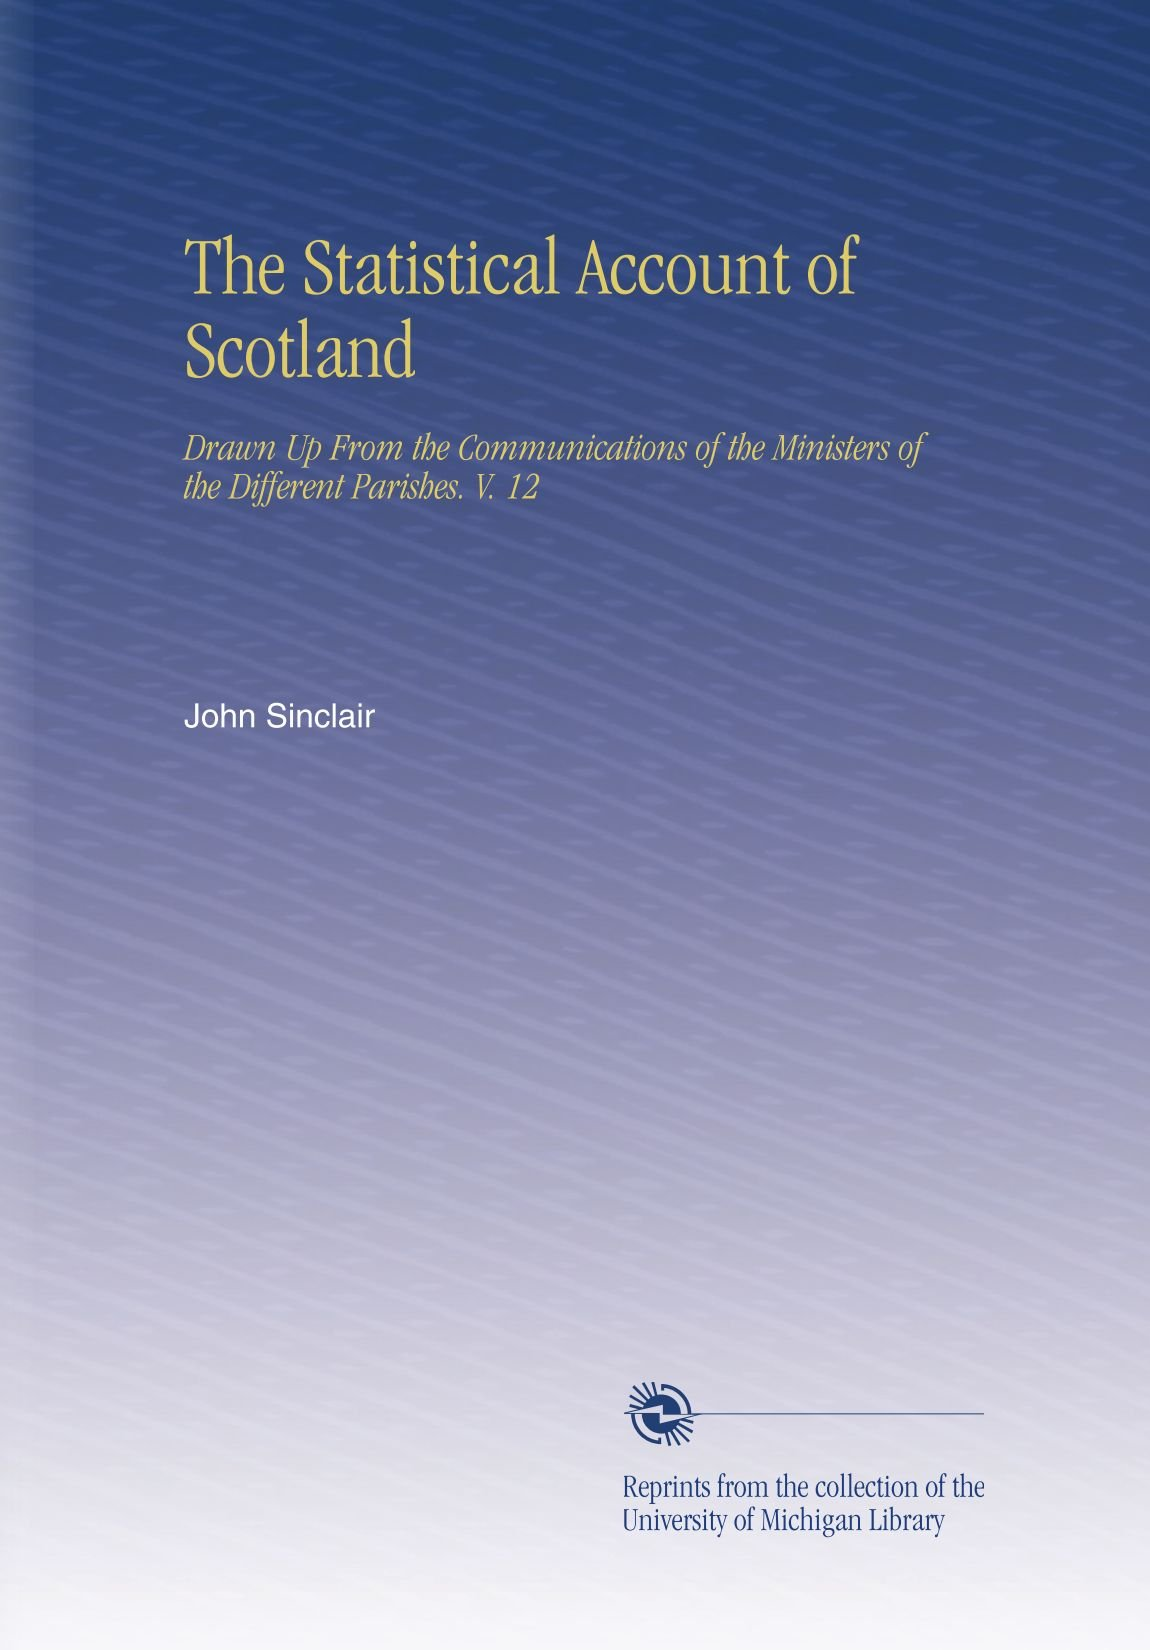 The Statistical Account of Scotland: Drawn Up From the Communications of the Ministers of the Different Parishes. V. 12 PDF